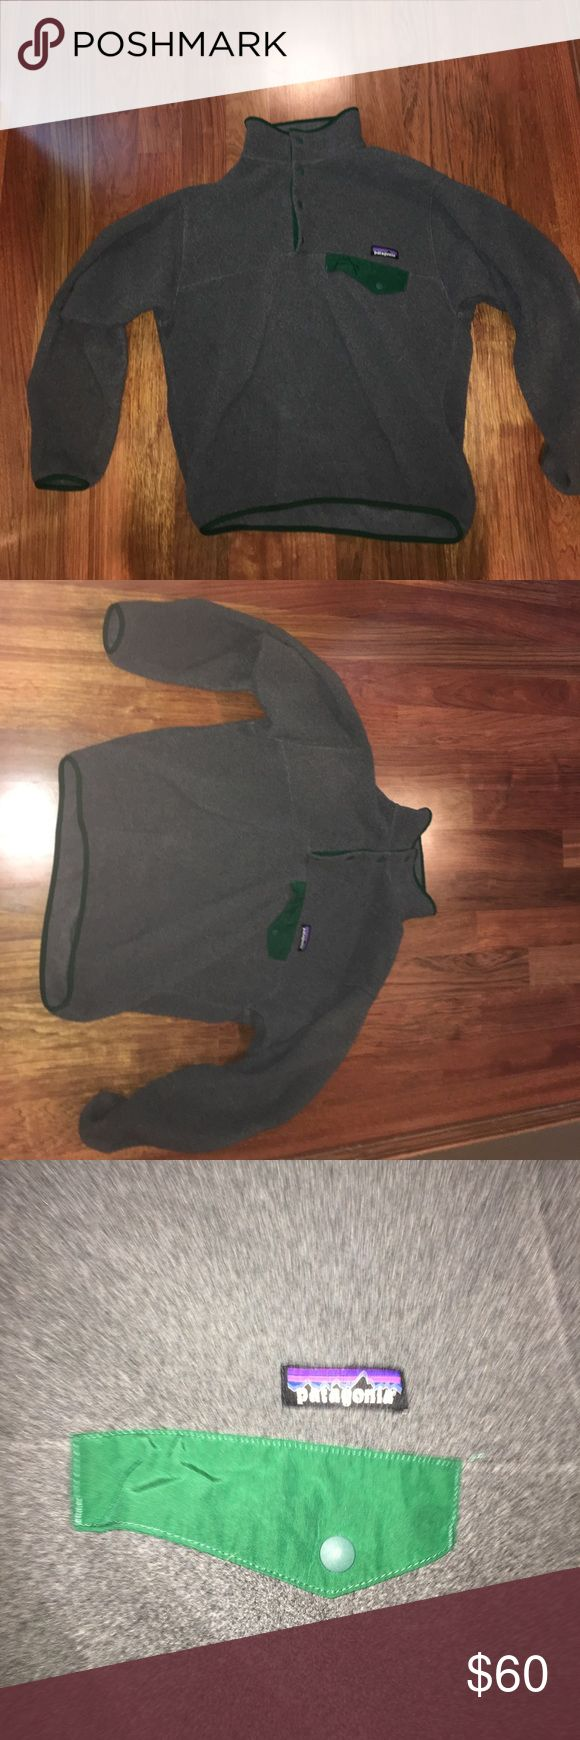 Patagonia Fleece Pullover Men's Patagonia Grey/Green Fleece pullover size small barely worn Patagonia Jackets & Coats Lightweight & Shirt Jackets